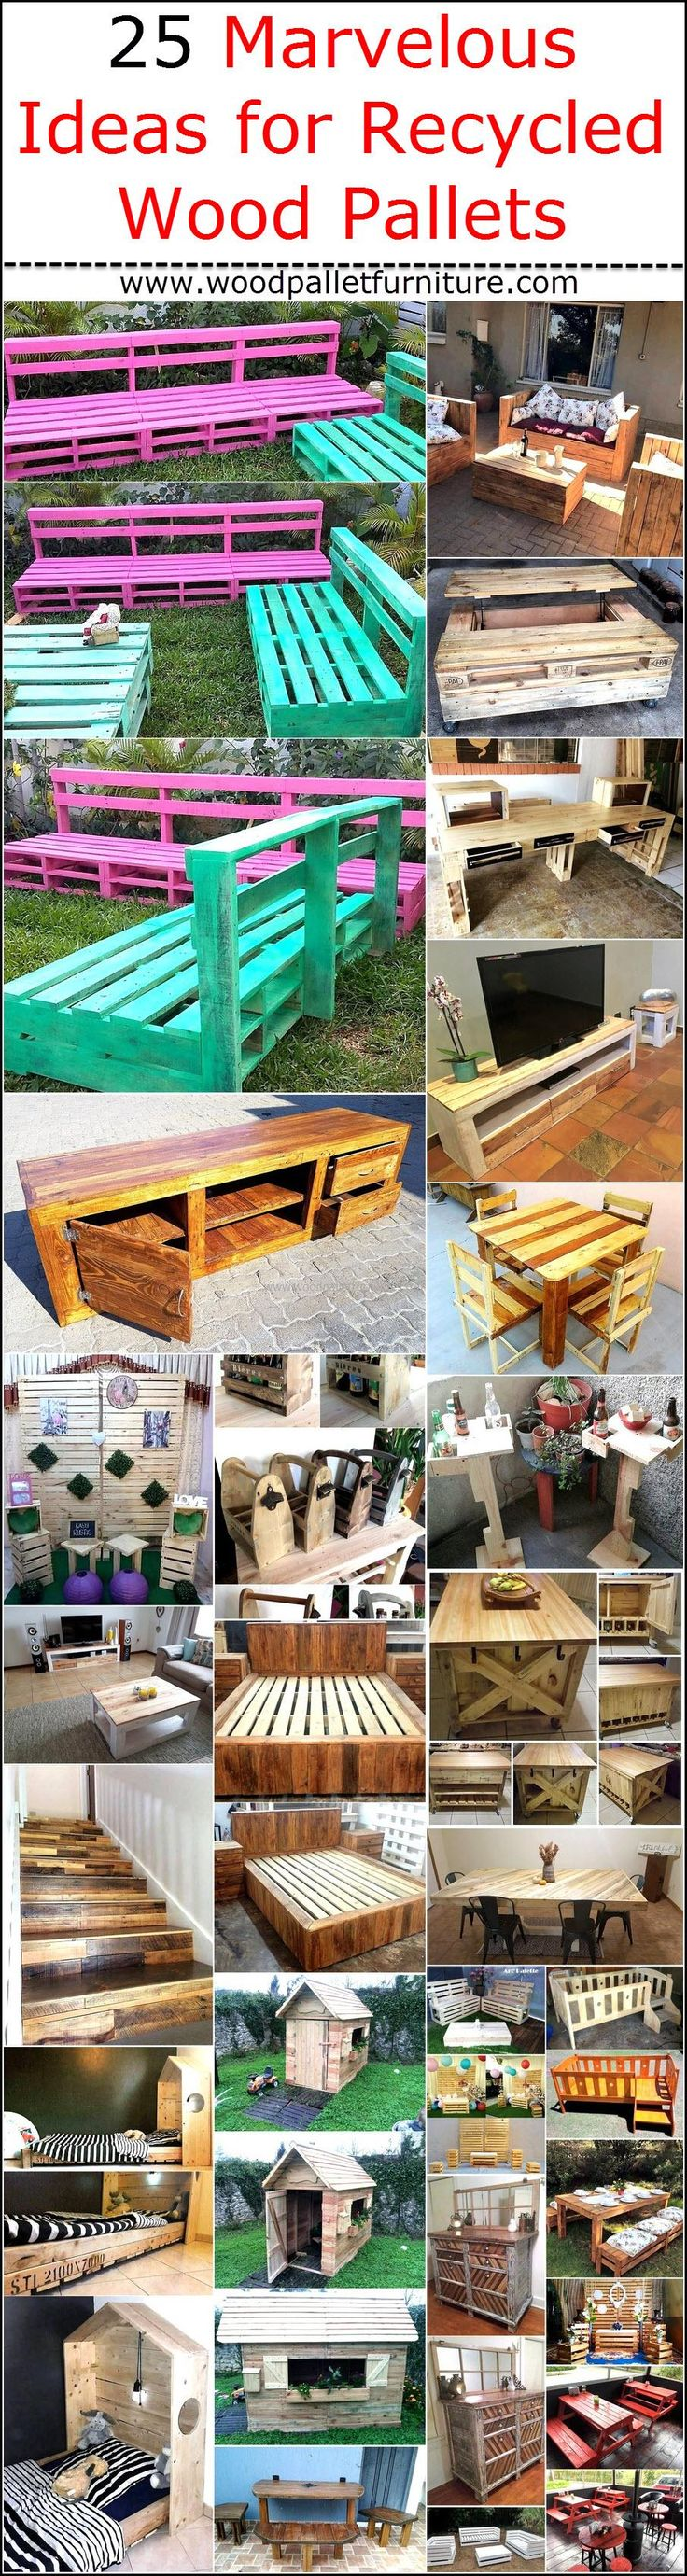 There are unlimited ideas with which the people with the creative mind can make the items of daily use by utilizing the recycled wood pallets, the bed for the kid's room can be created and the house of the pet can also be made which are both expensive. Those who can't afford or those who don't prefer to spend money on the things which can be created at home can go for making the furniture for the garden and patio at home. In some cases, the pallets need to be painted otherwise they can be…